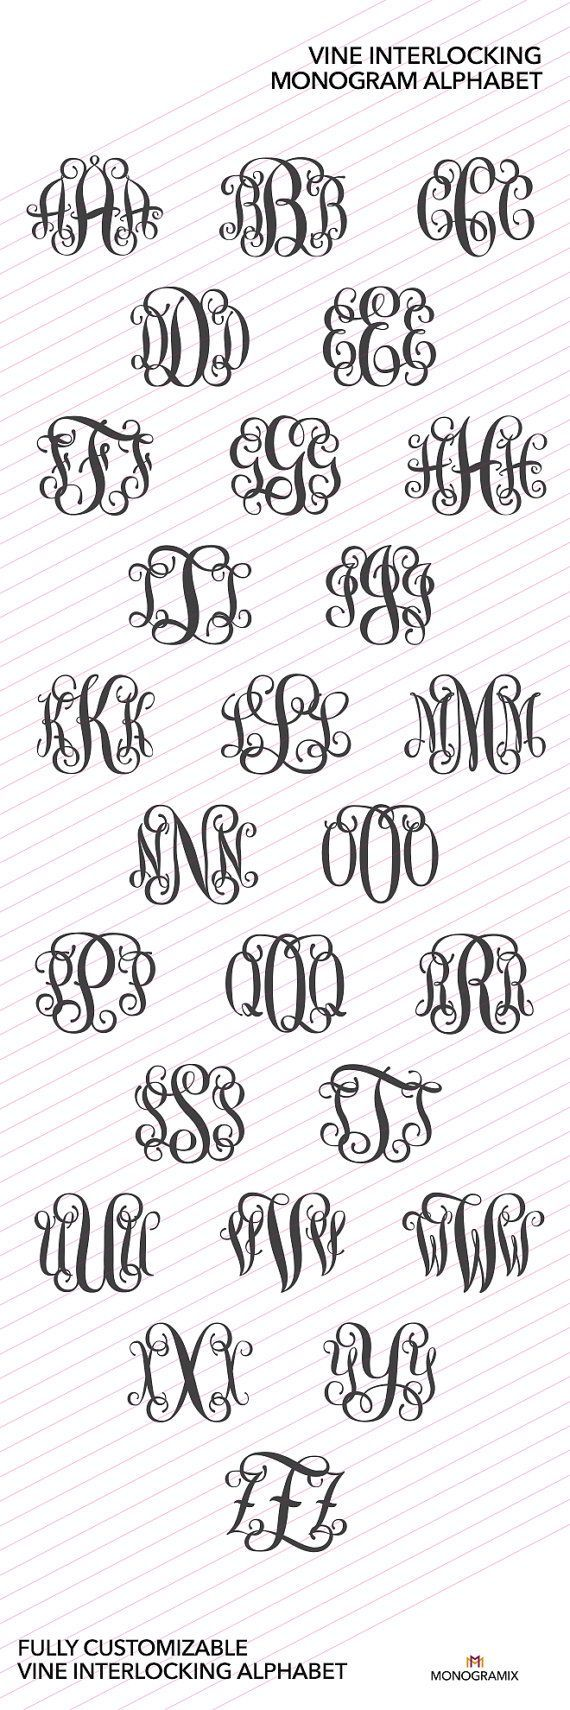 MONOGRAM ALPHABET: Vine Interlocking Monogram Alphabet.  Includes the following file formats: .studio3, .studio, .svg, .dxf, .eps and .ai.  With this